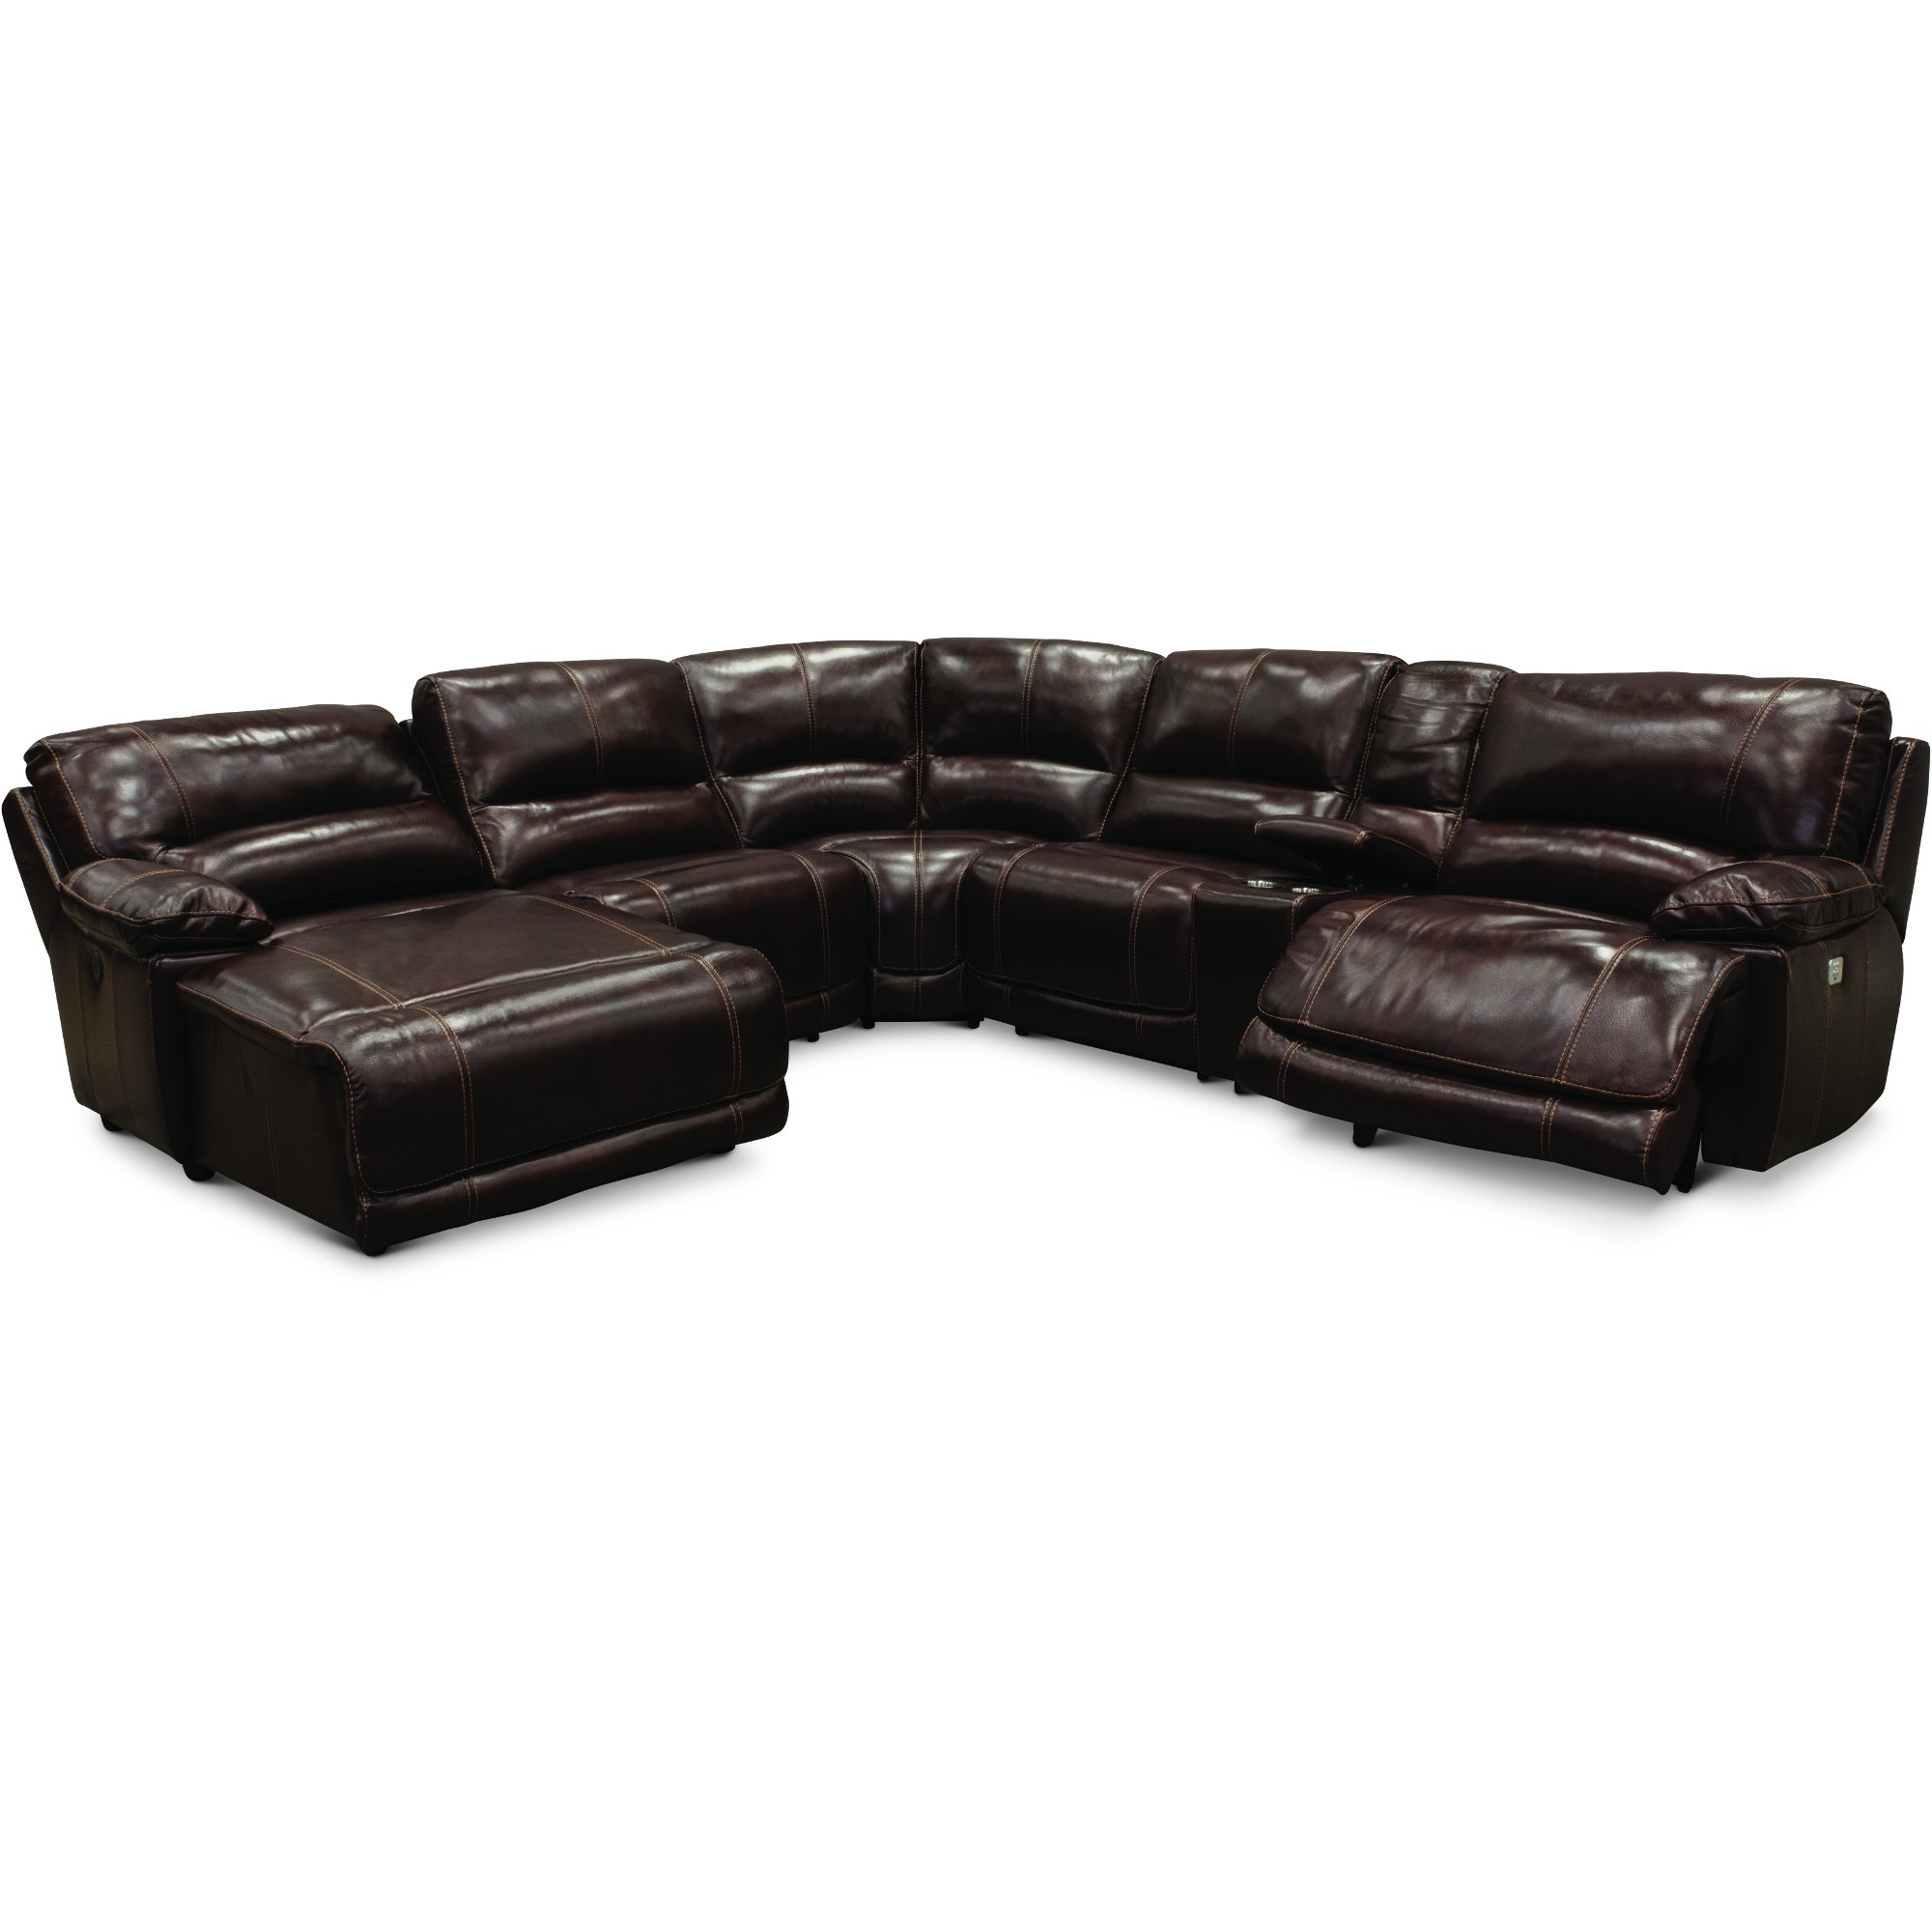 Most Recently Released Jackson 6 Piece Power Reclining Sectionals With  Sleeper Within Burgundy Leather Match Power Reclining Sectional Sofa – Brant (View 10 of 20)